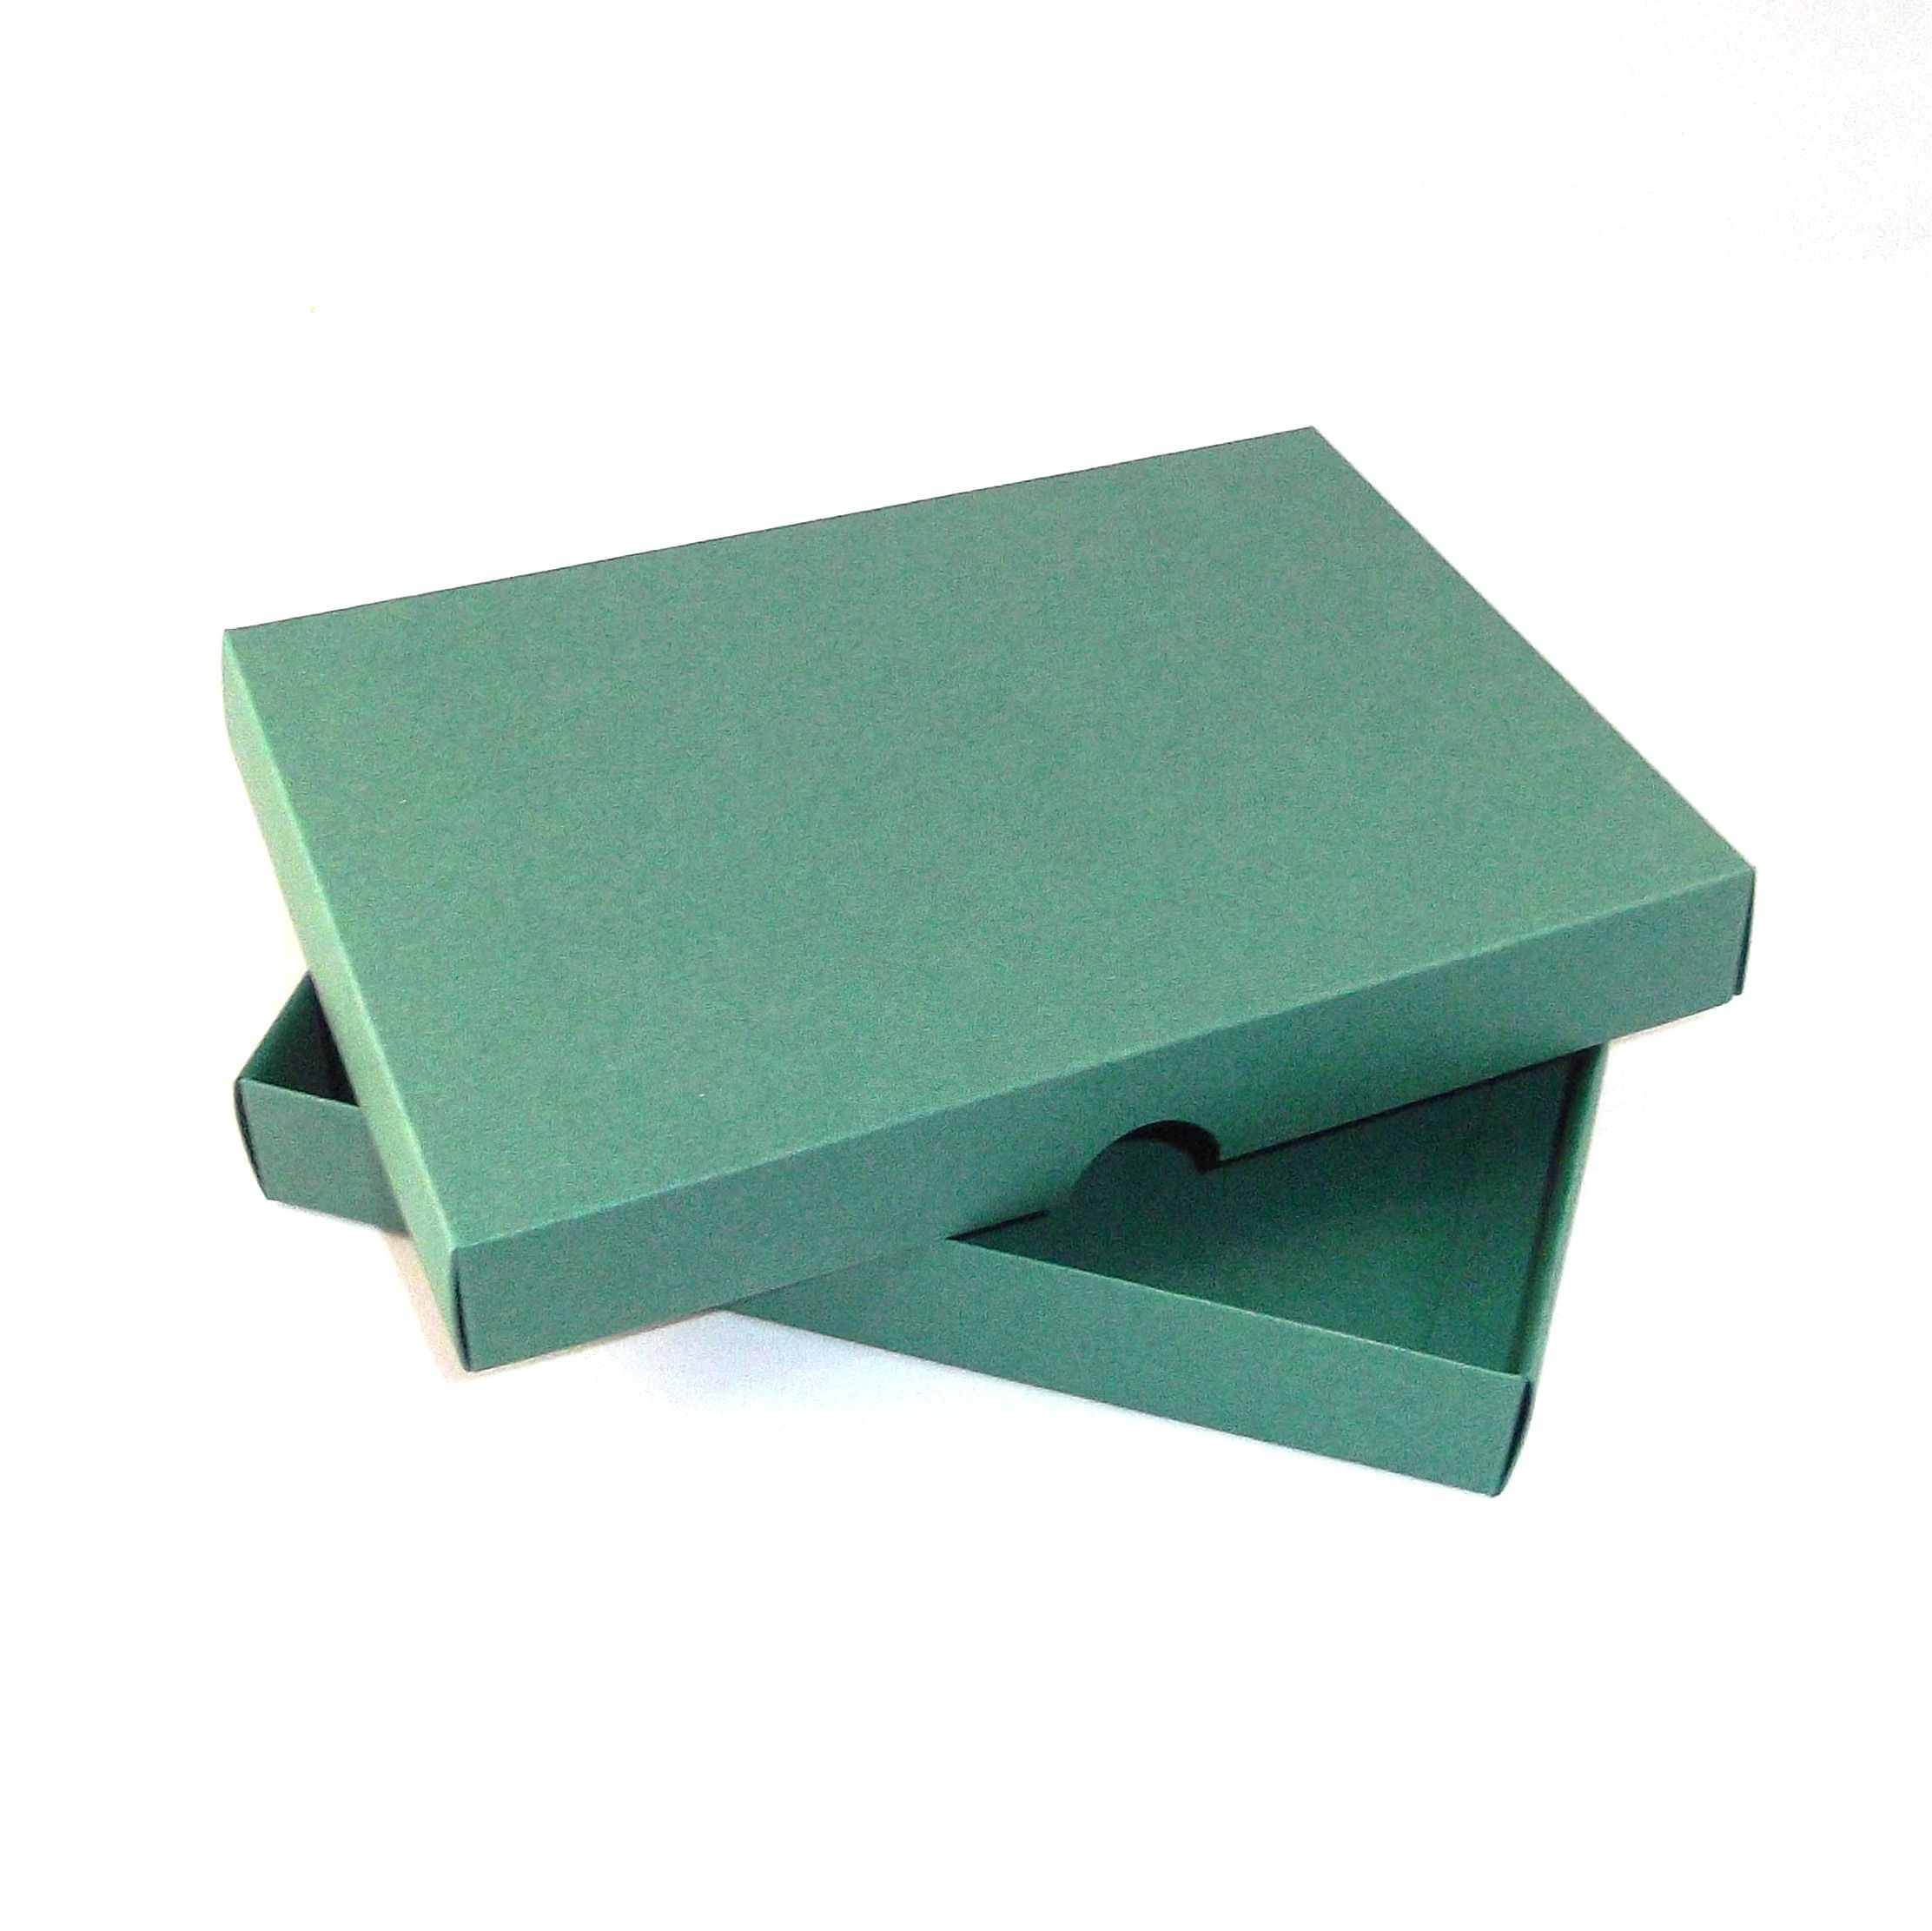 A5 Green Greeting Card Boxes For Handmade Cards